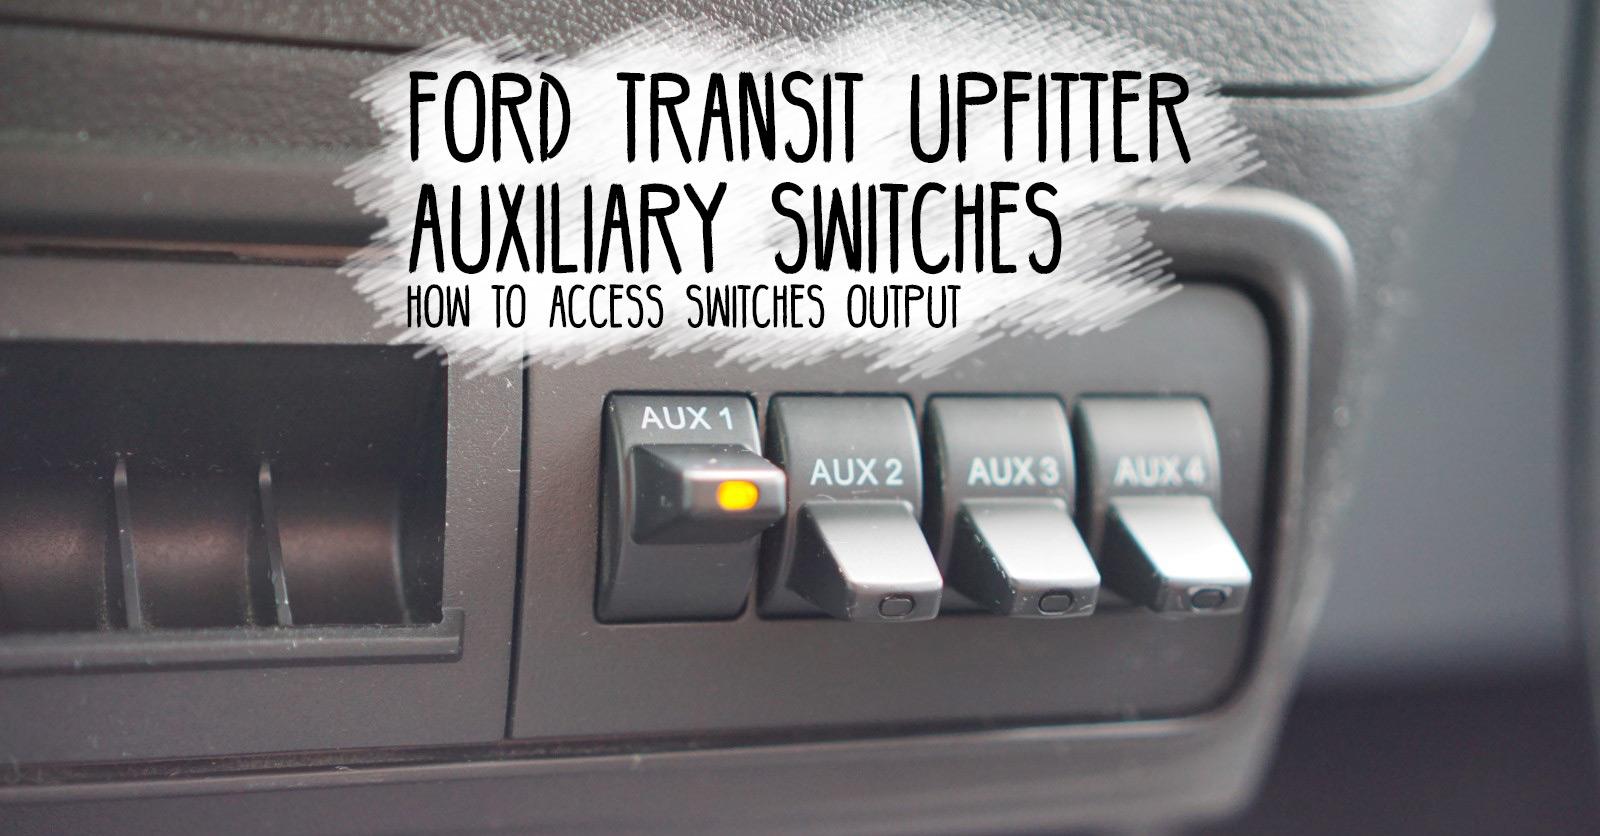 medium resolution of ford transit upfitter auxiliary switches faroutride rh faroutride com 2015 ford transit door lock wiring diagram 2015 ford transit aux power wiring diagram